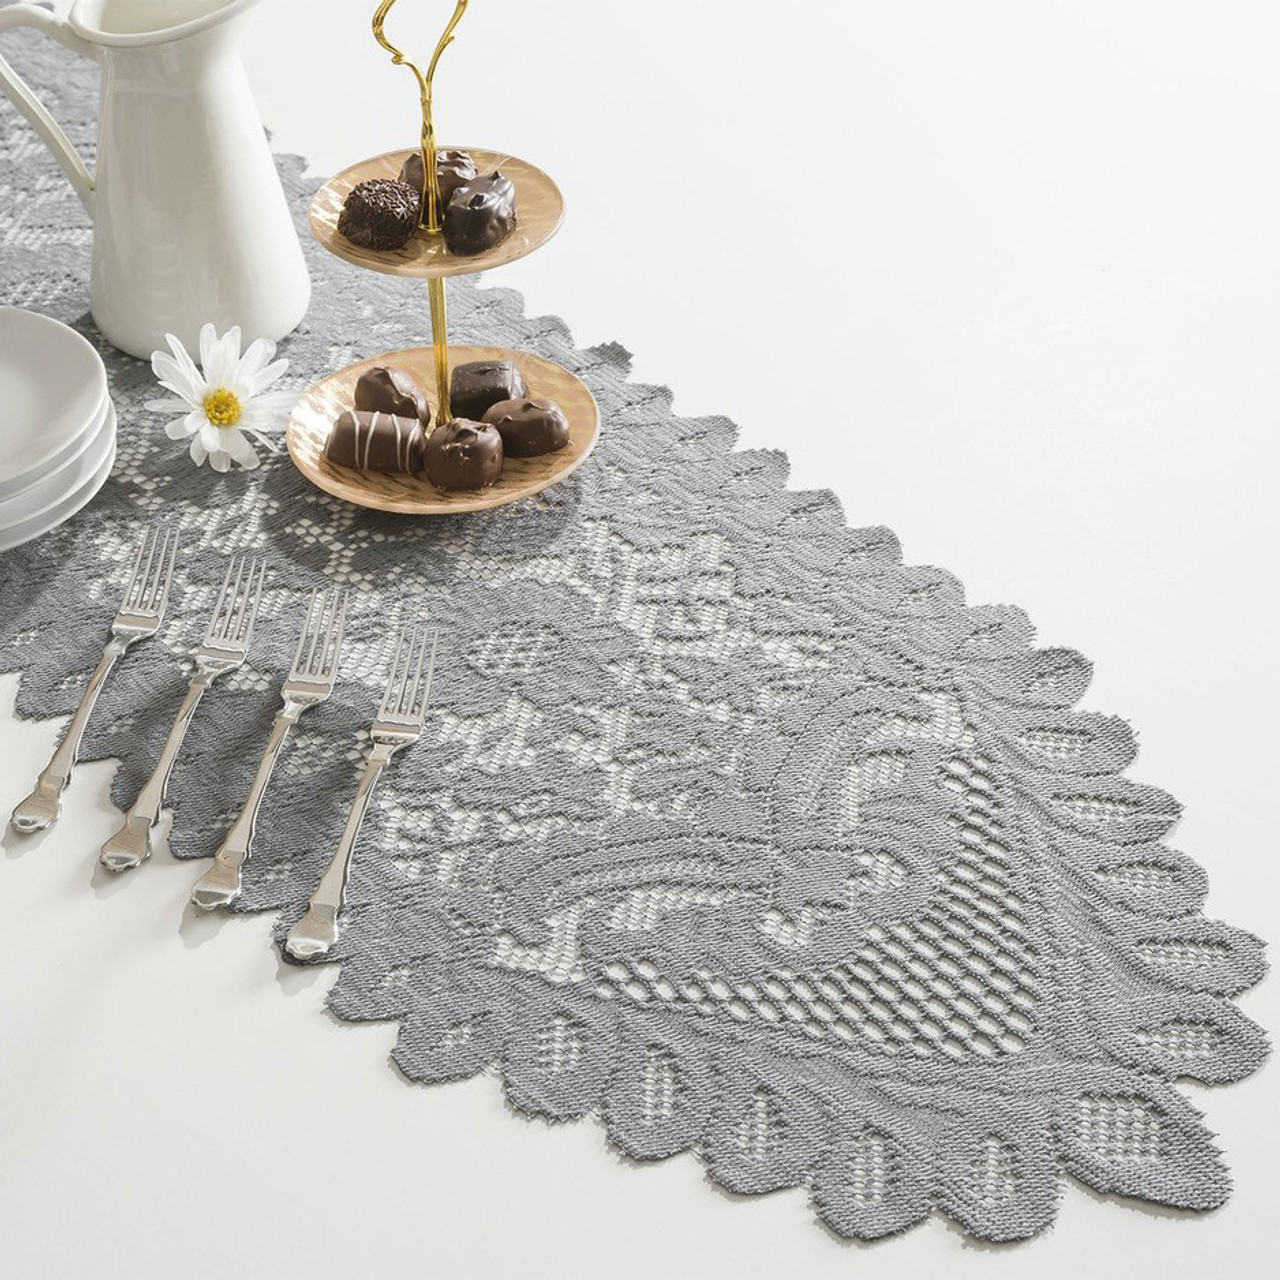 13 x 76 Gray Floral Lace Table Runners LS165-80, Wholesale Lace Table Runners For Weddings and Events   Packaging Decor